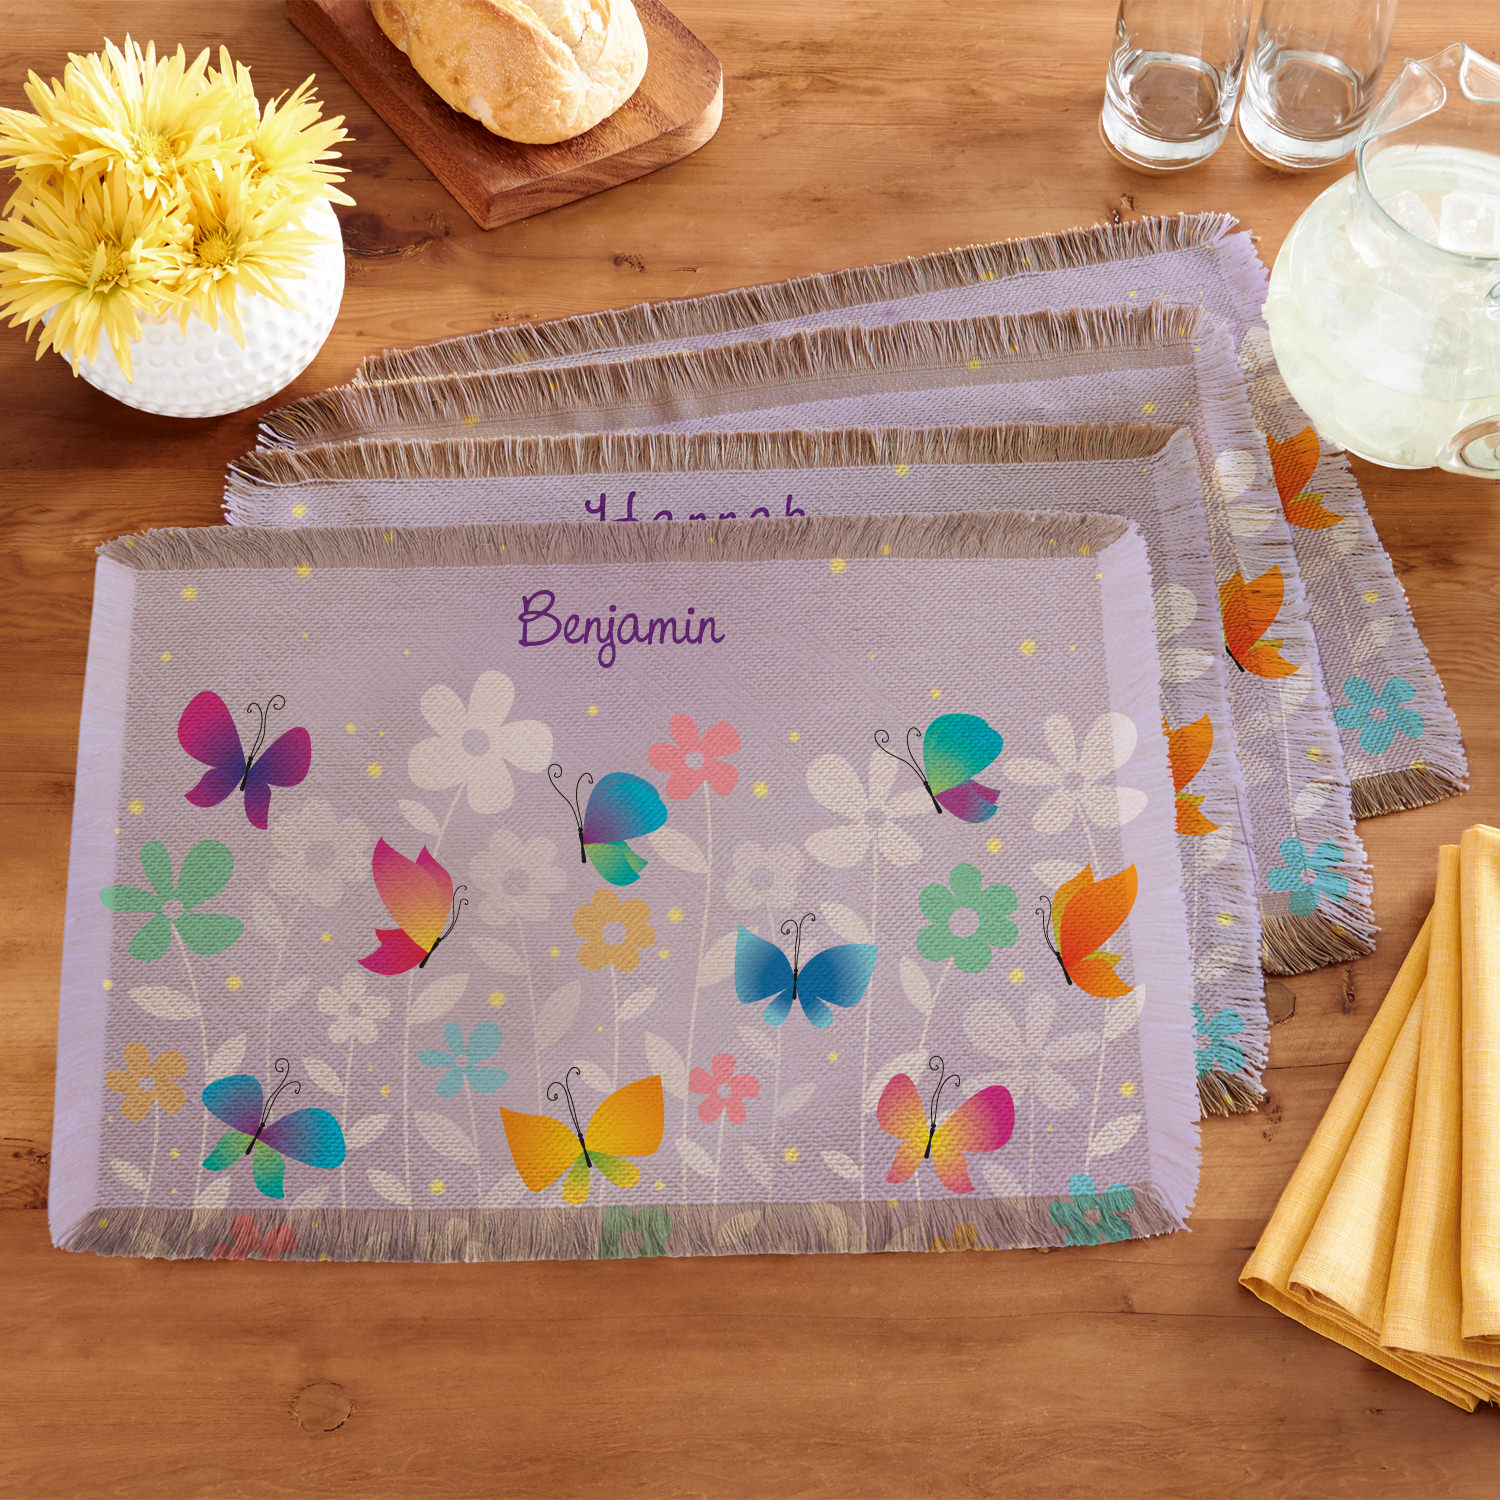 Personalized Spring Butterflies Placemats - Set of 4